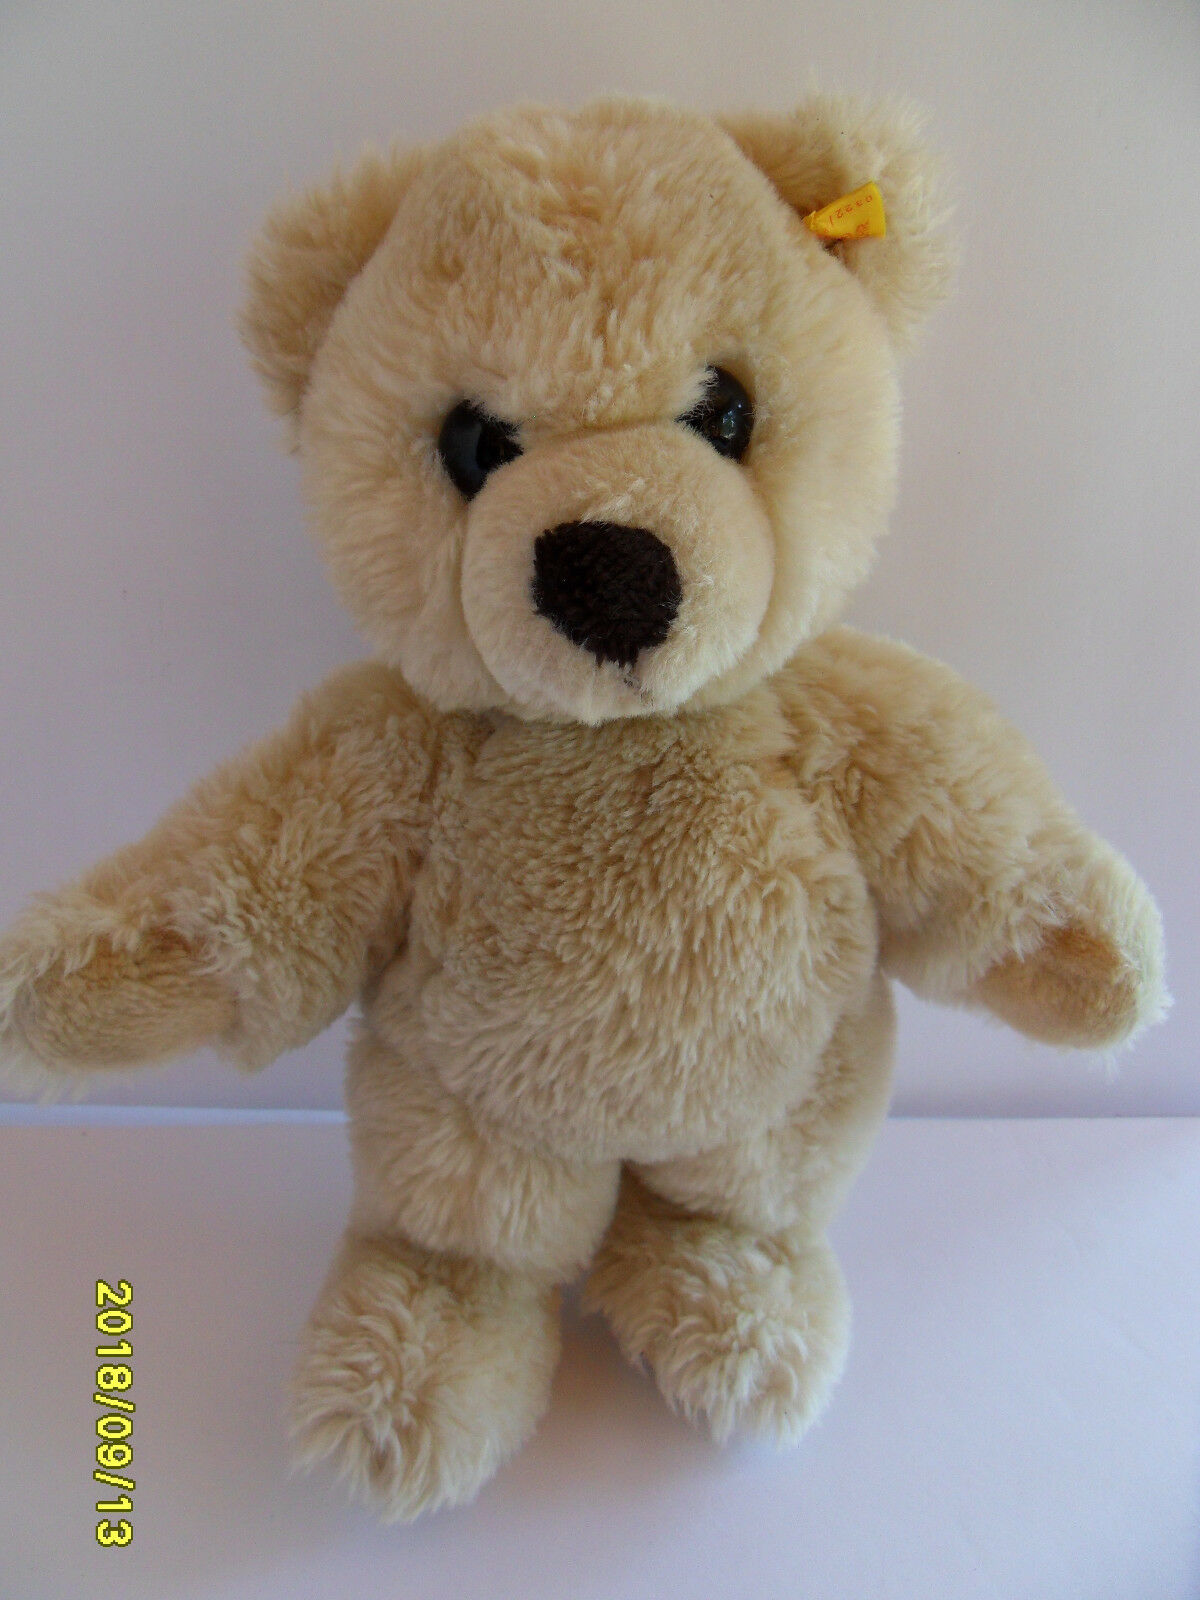 Steiff bear Teddy bear cream large button  stuffed animal made in Germany 2606